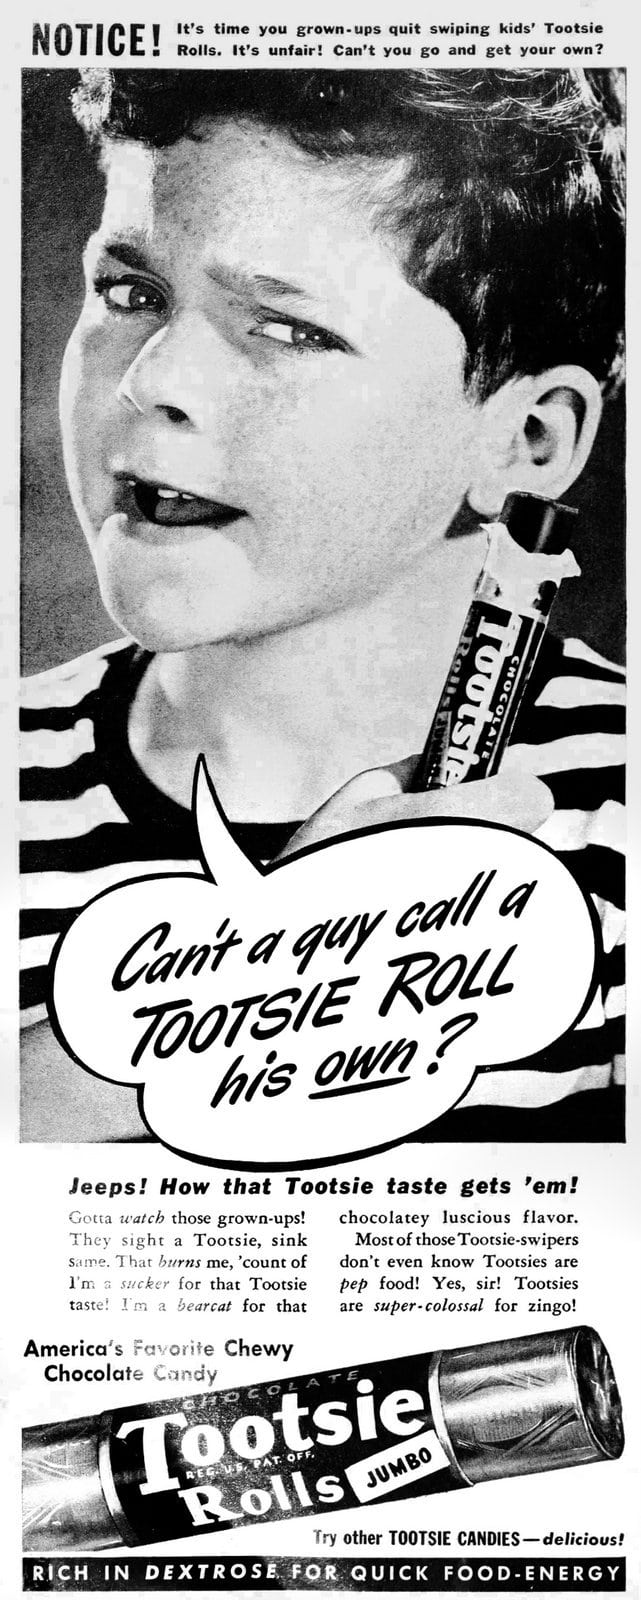 A Tootsie Roll of his own - Jumbo size (1936)